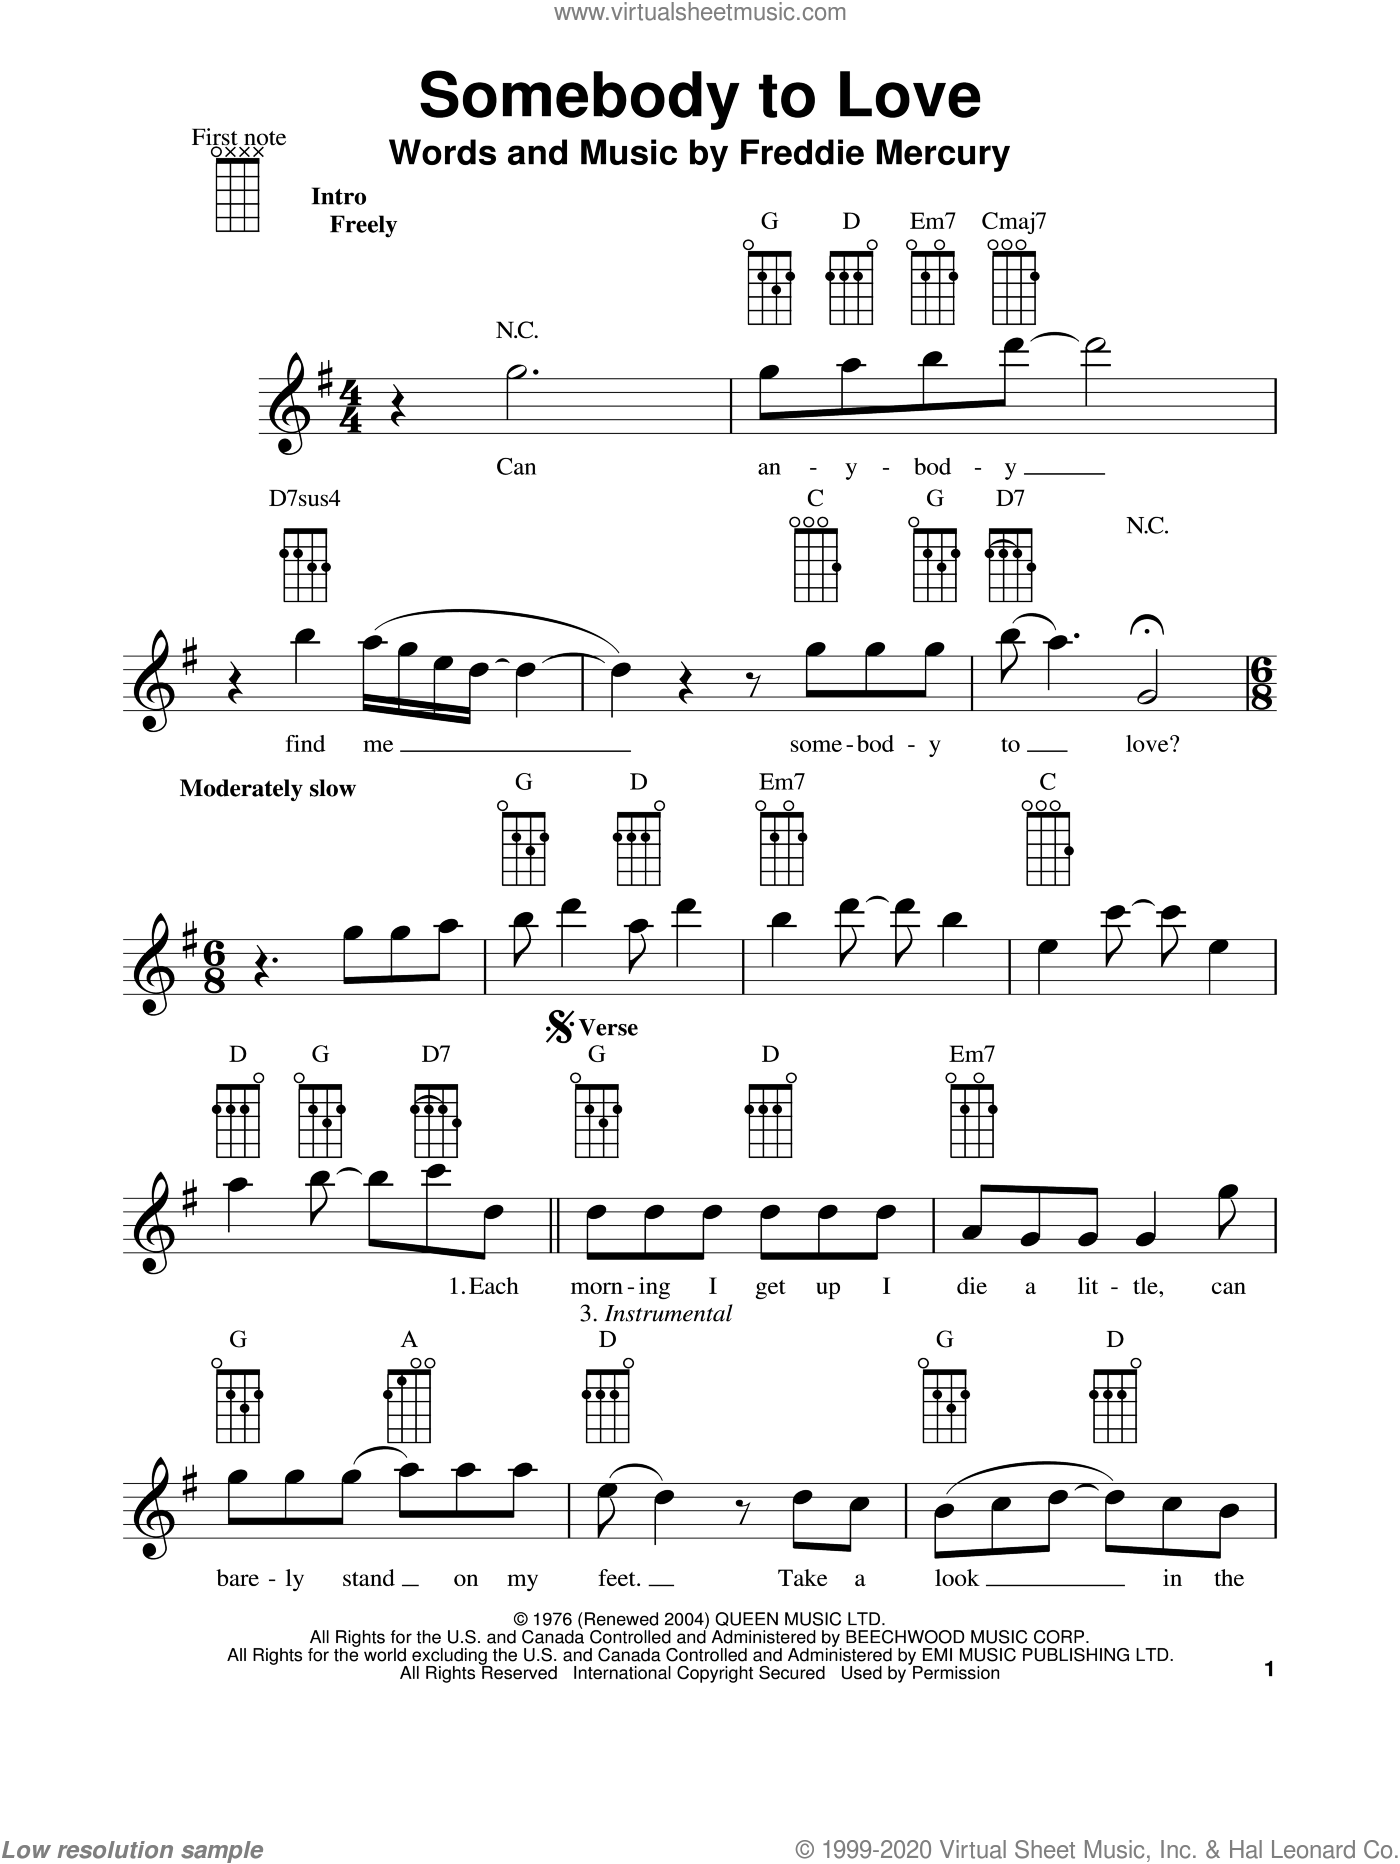 Somebody To Love sheet music for ukulele by Freddie Mercury, Glee Cast and Queen. Score Image Preview.